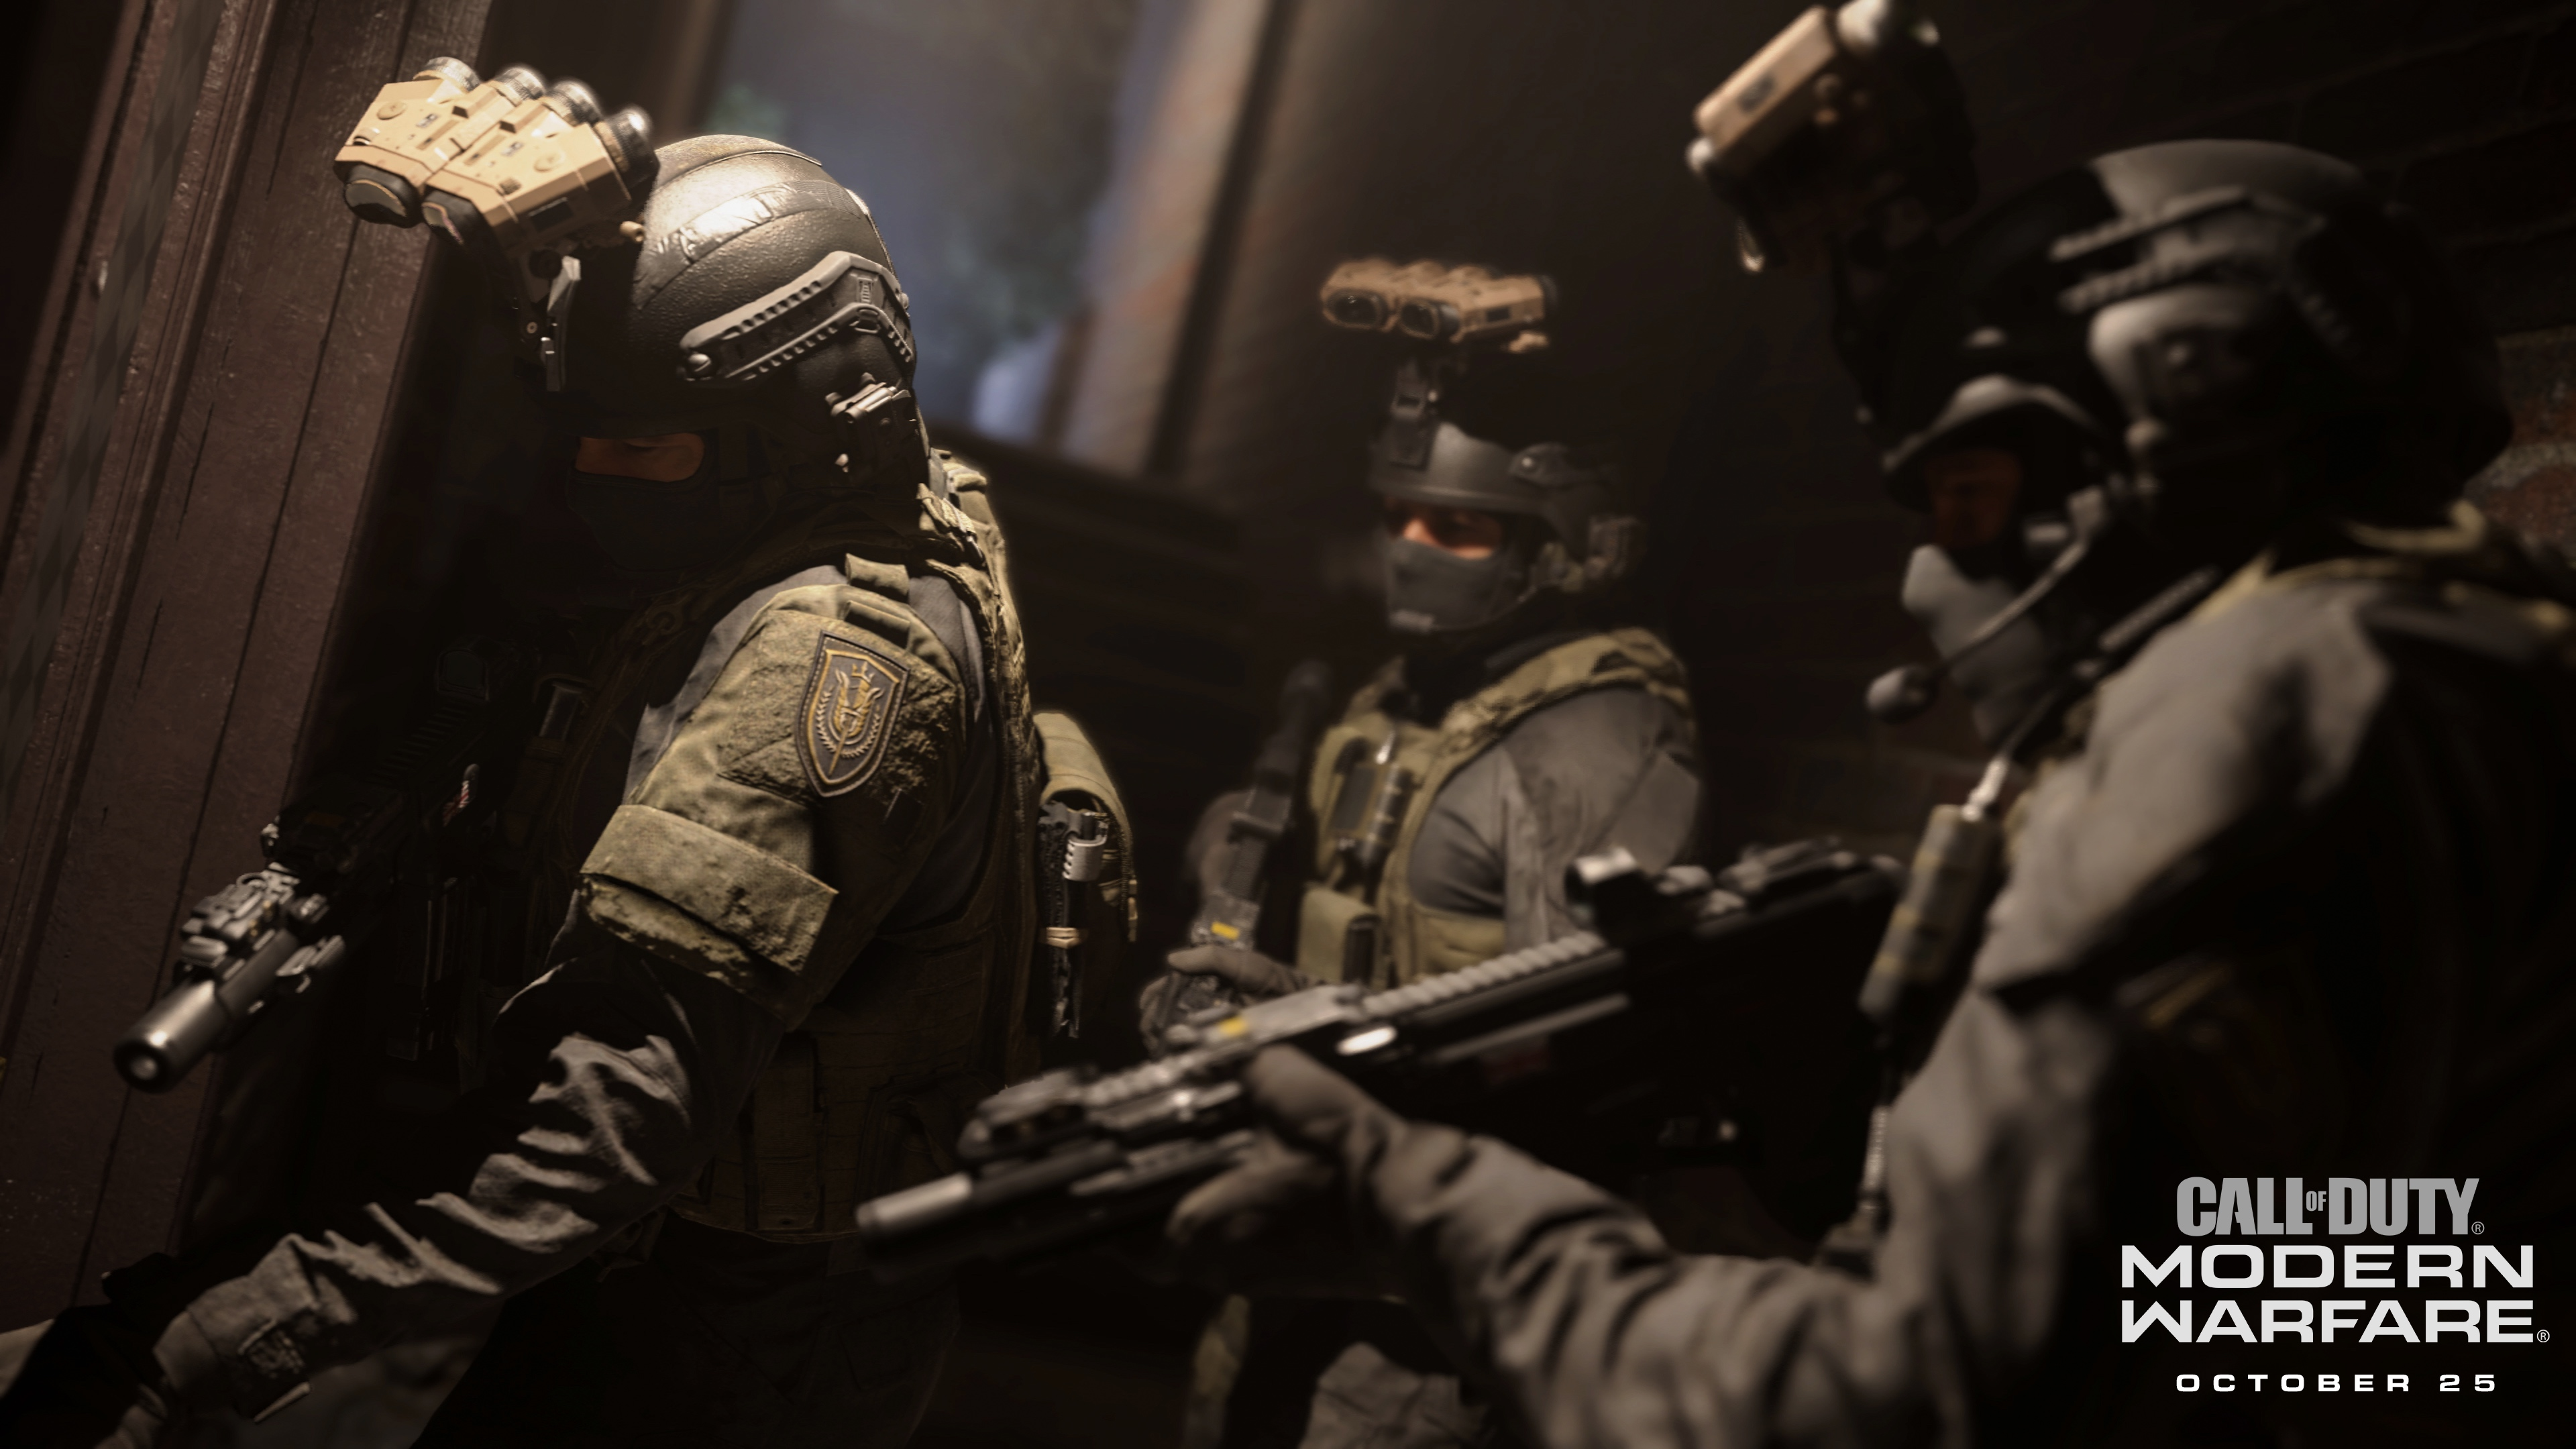 Call of Duty: Modern Warfare's campaign will feed into its